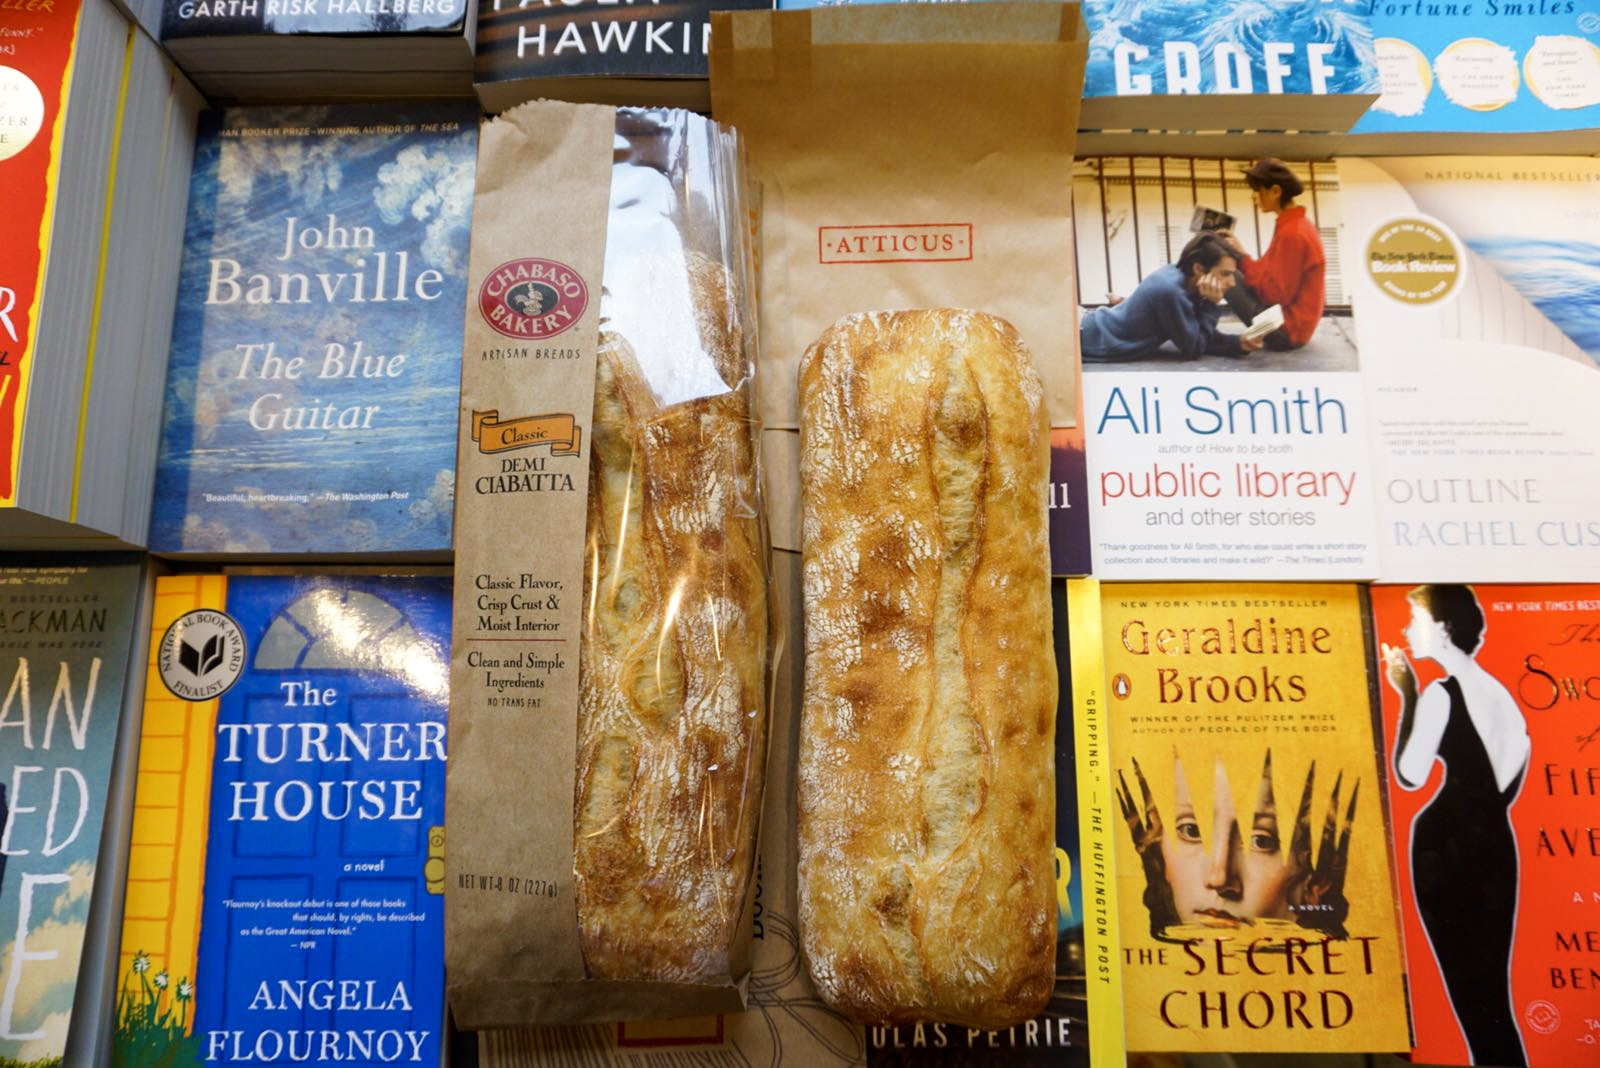 Free Bread on Election Day at Atticus Cafe